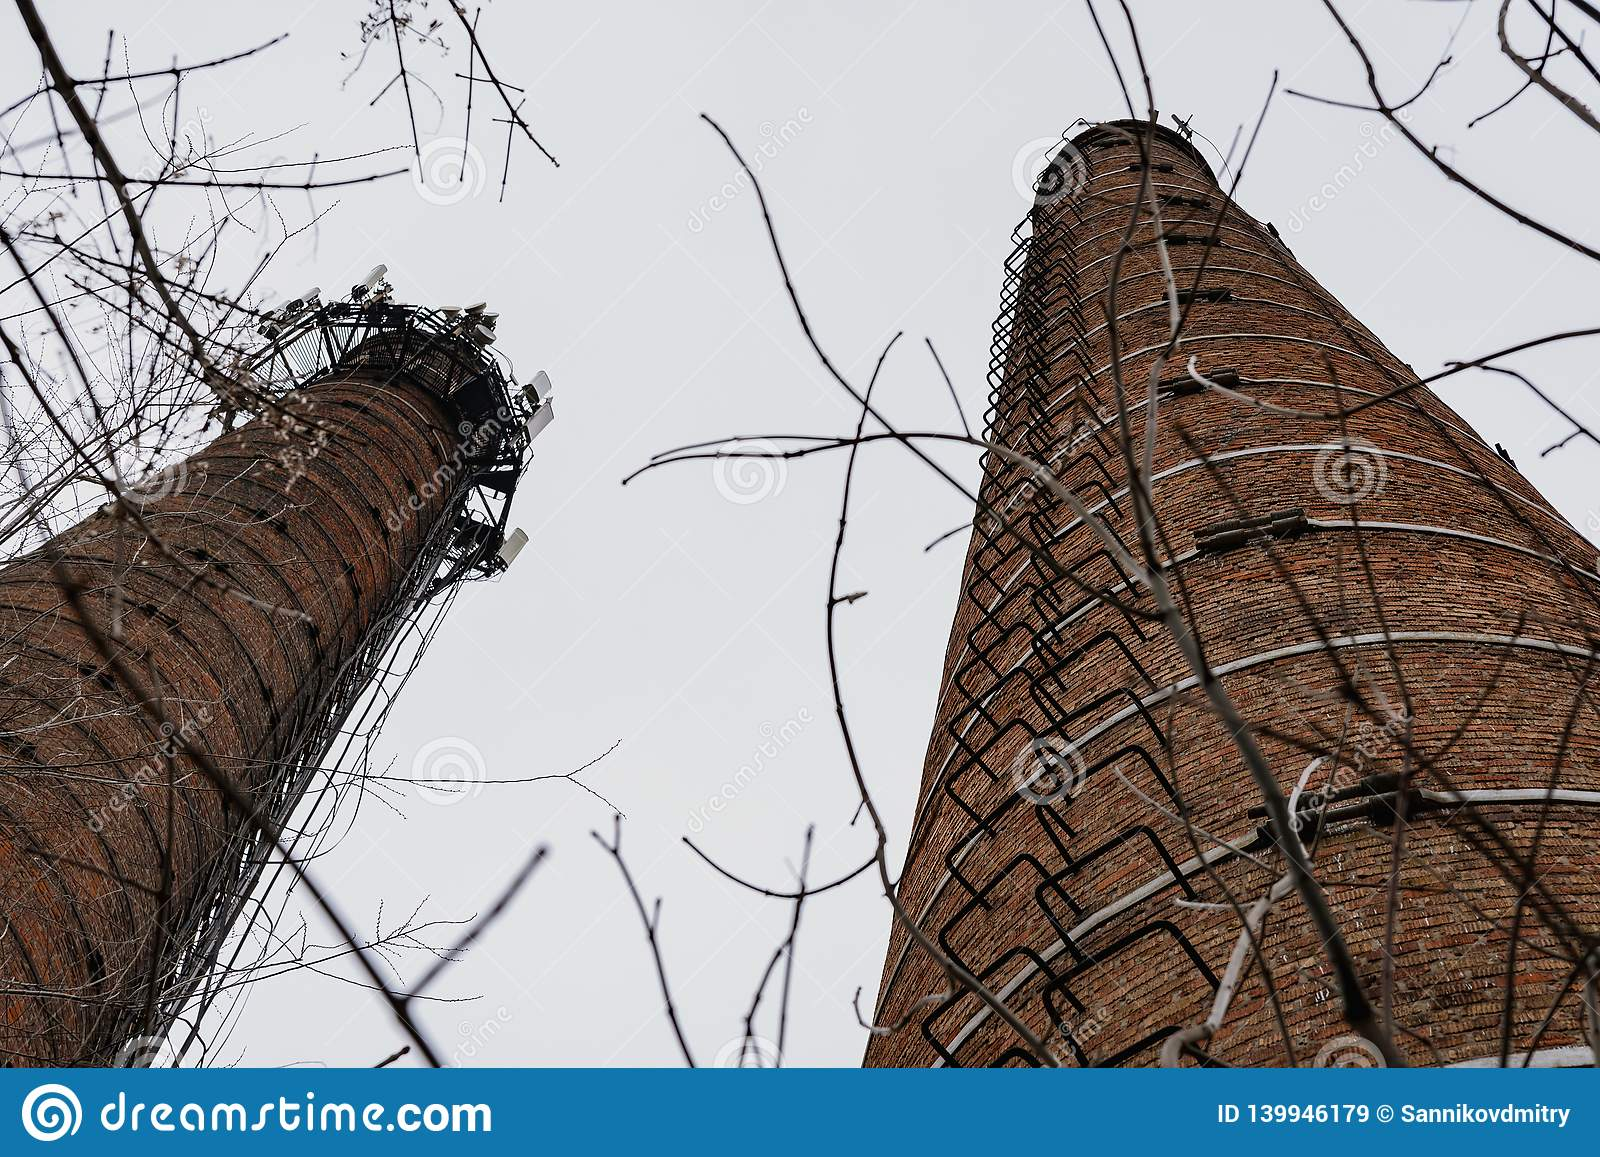 Old brick pipe of the boiler house without smoke.